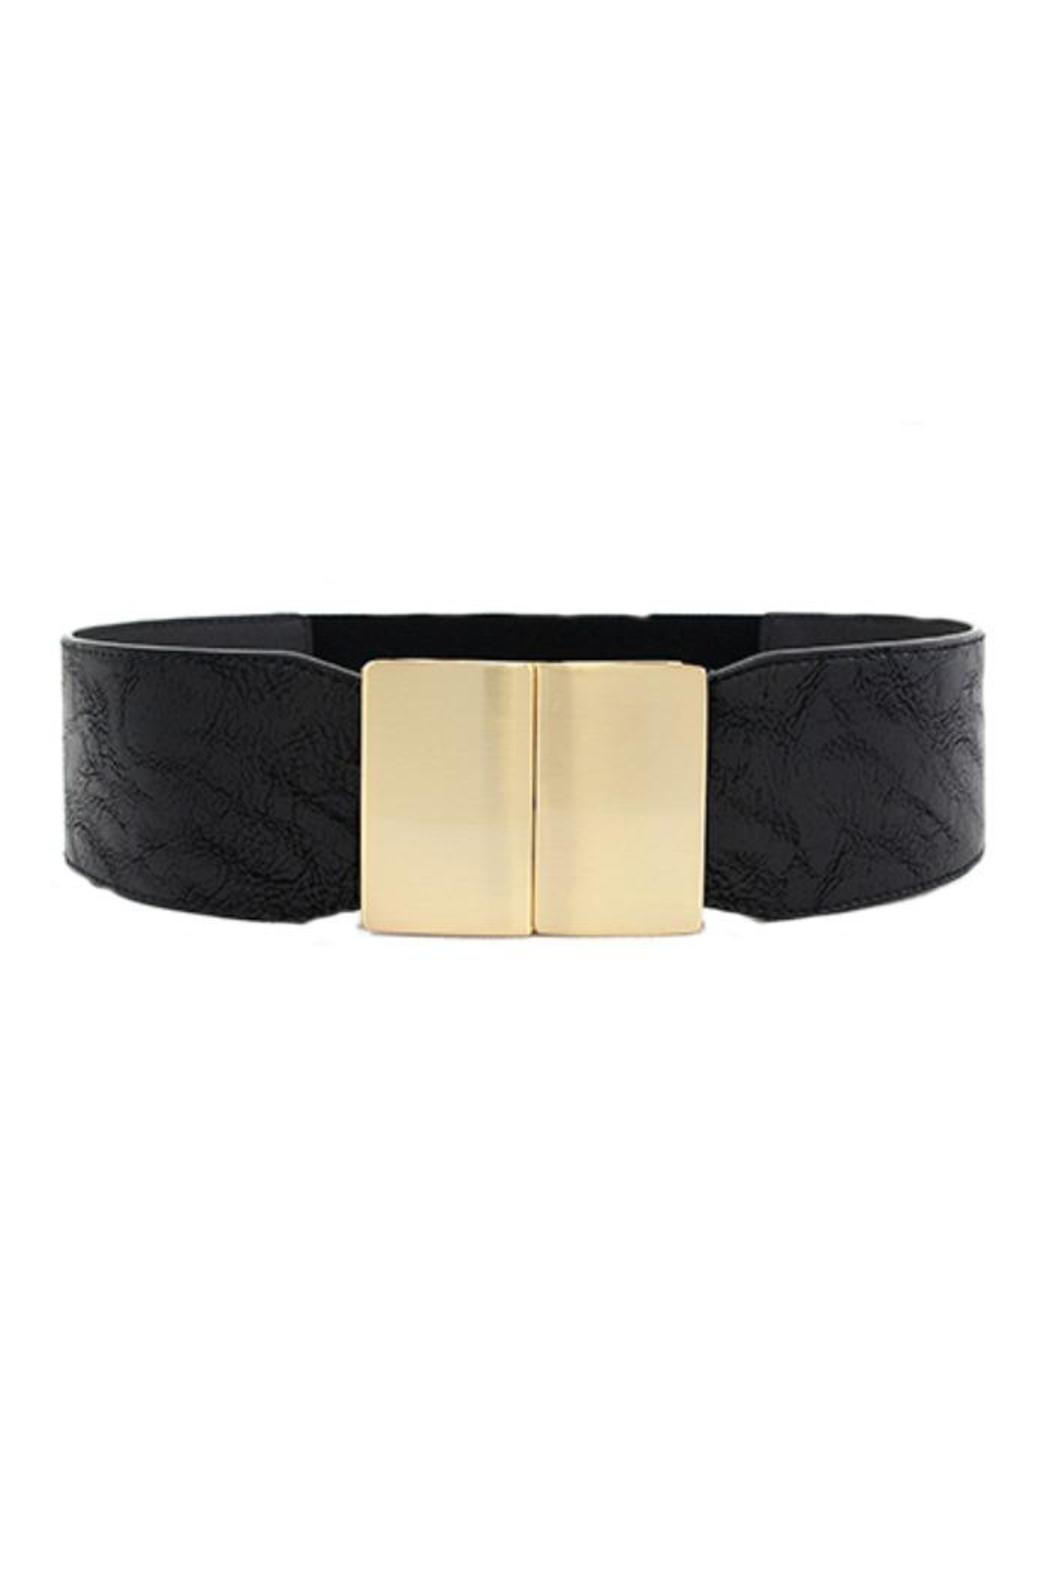 icco black wide belt from michigan by che bello boutique